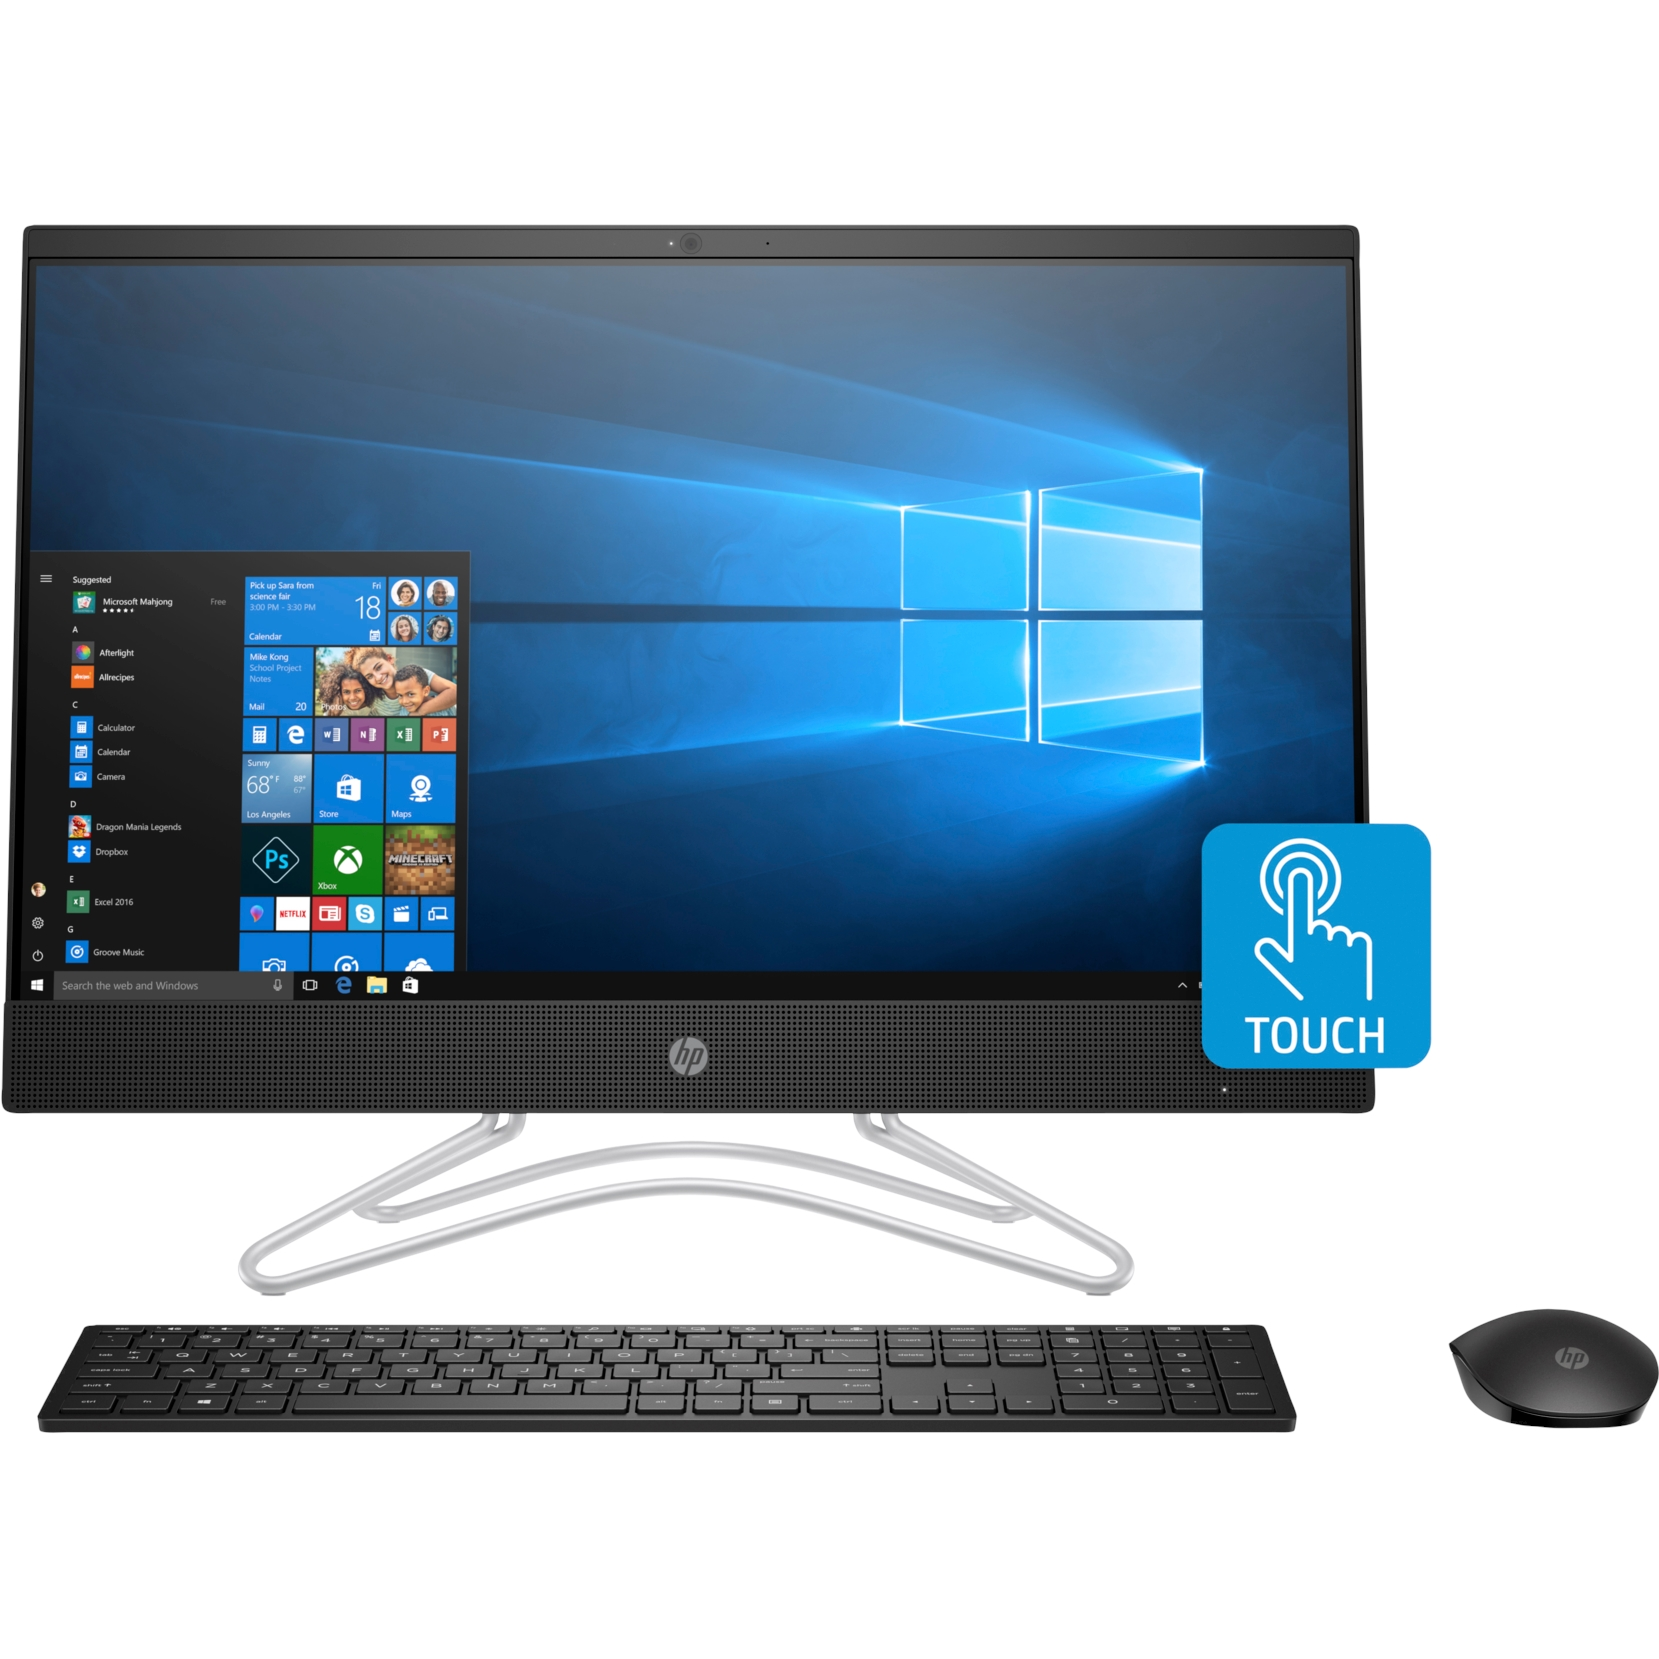 "HP 24-F0044NT 8UF45EA i5-9400 8GB 128SSD+1TB 2GB MX110 23.8"" FHD DOKUNMATİK FREDOOS SIYAH ALL IN ONE PC"